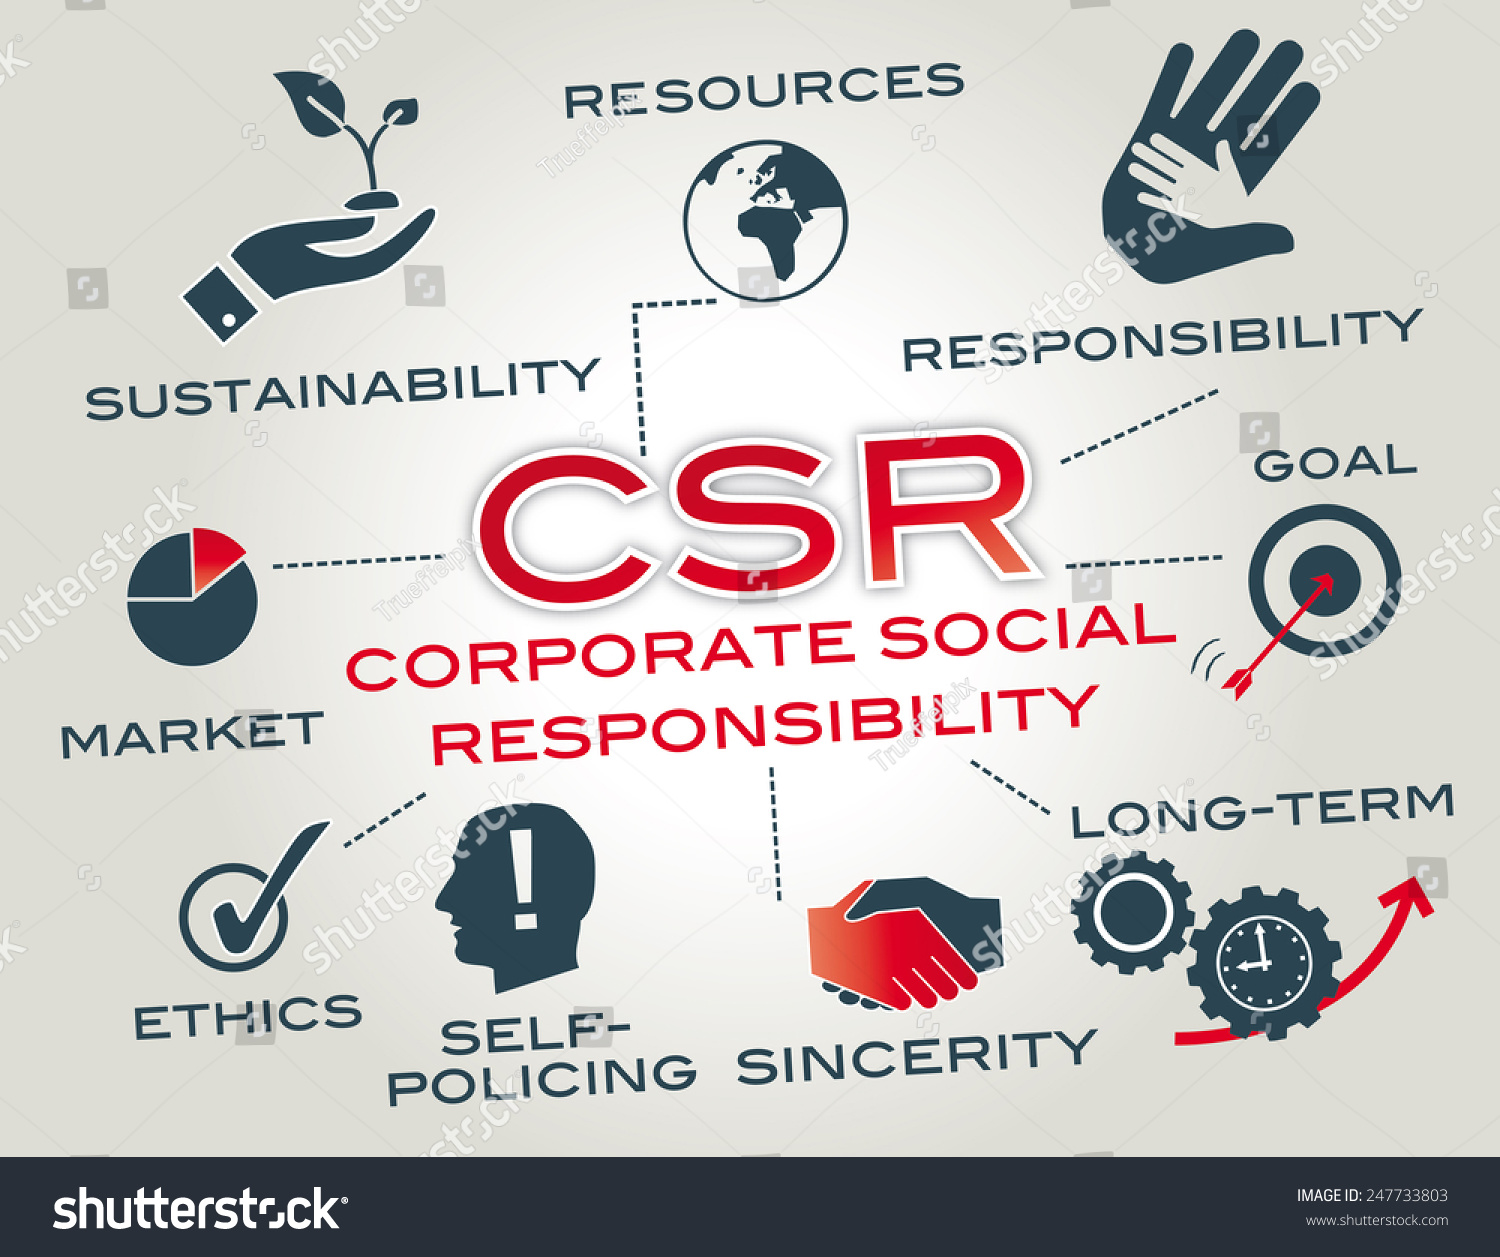 corporate social responsibility in iran Liao, ying-ying and iqbal, abdullah (2015) managerial mindsets toward  corporate social responsibility: the case of auto industry in iran.